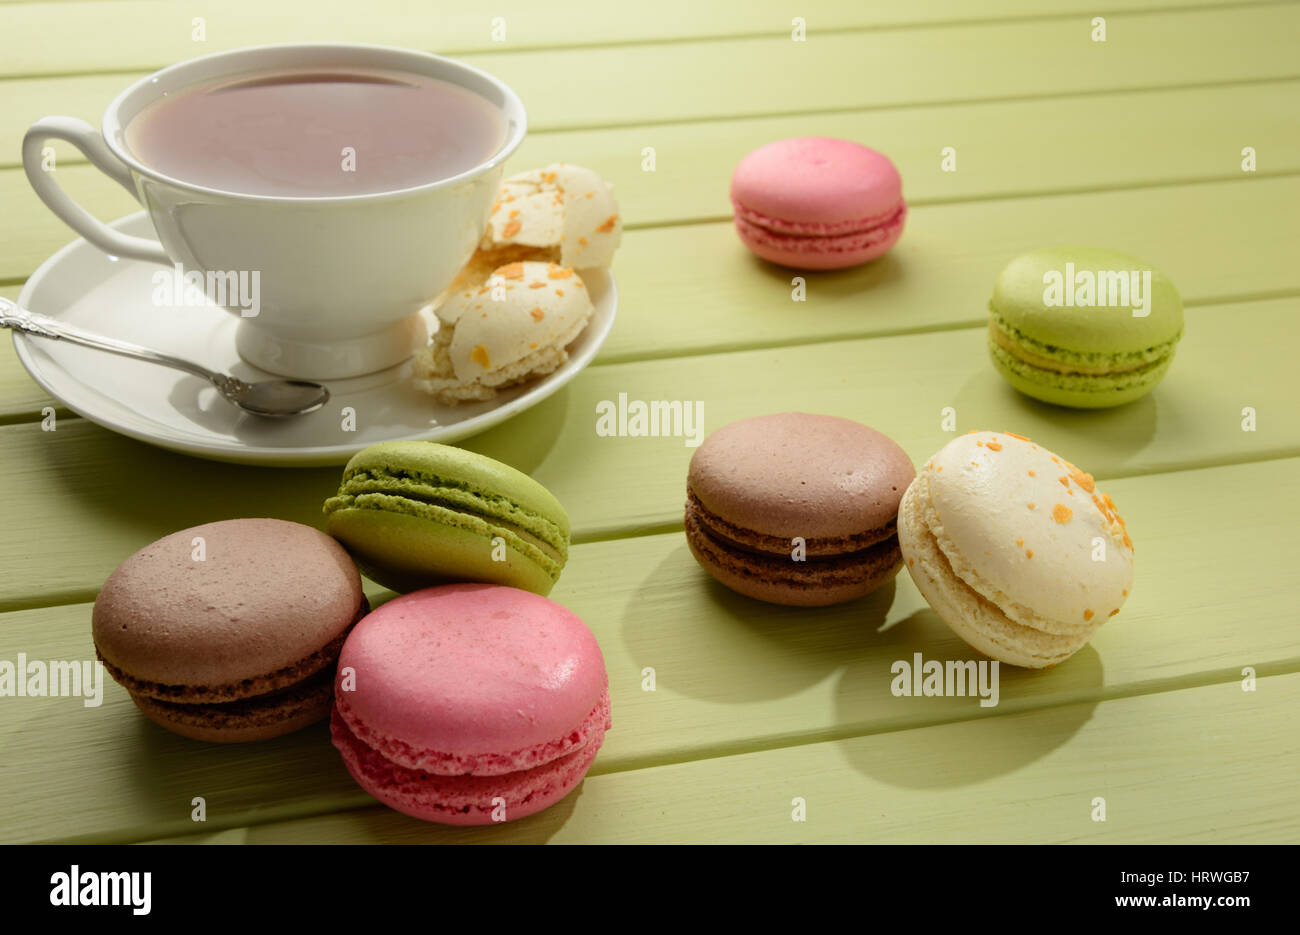 Tasty varicolored macarons and cup of tea on a green wooden table. - Stock Image